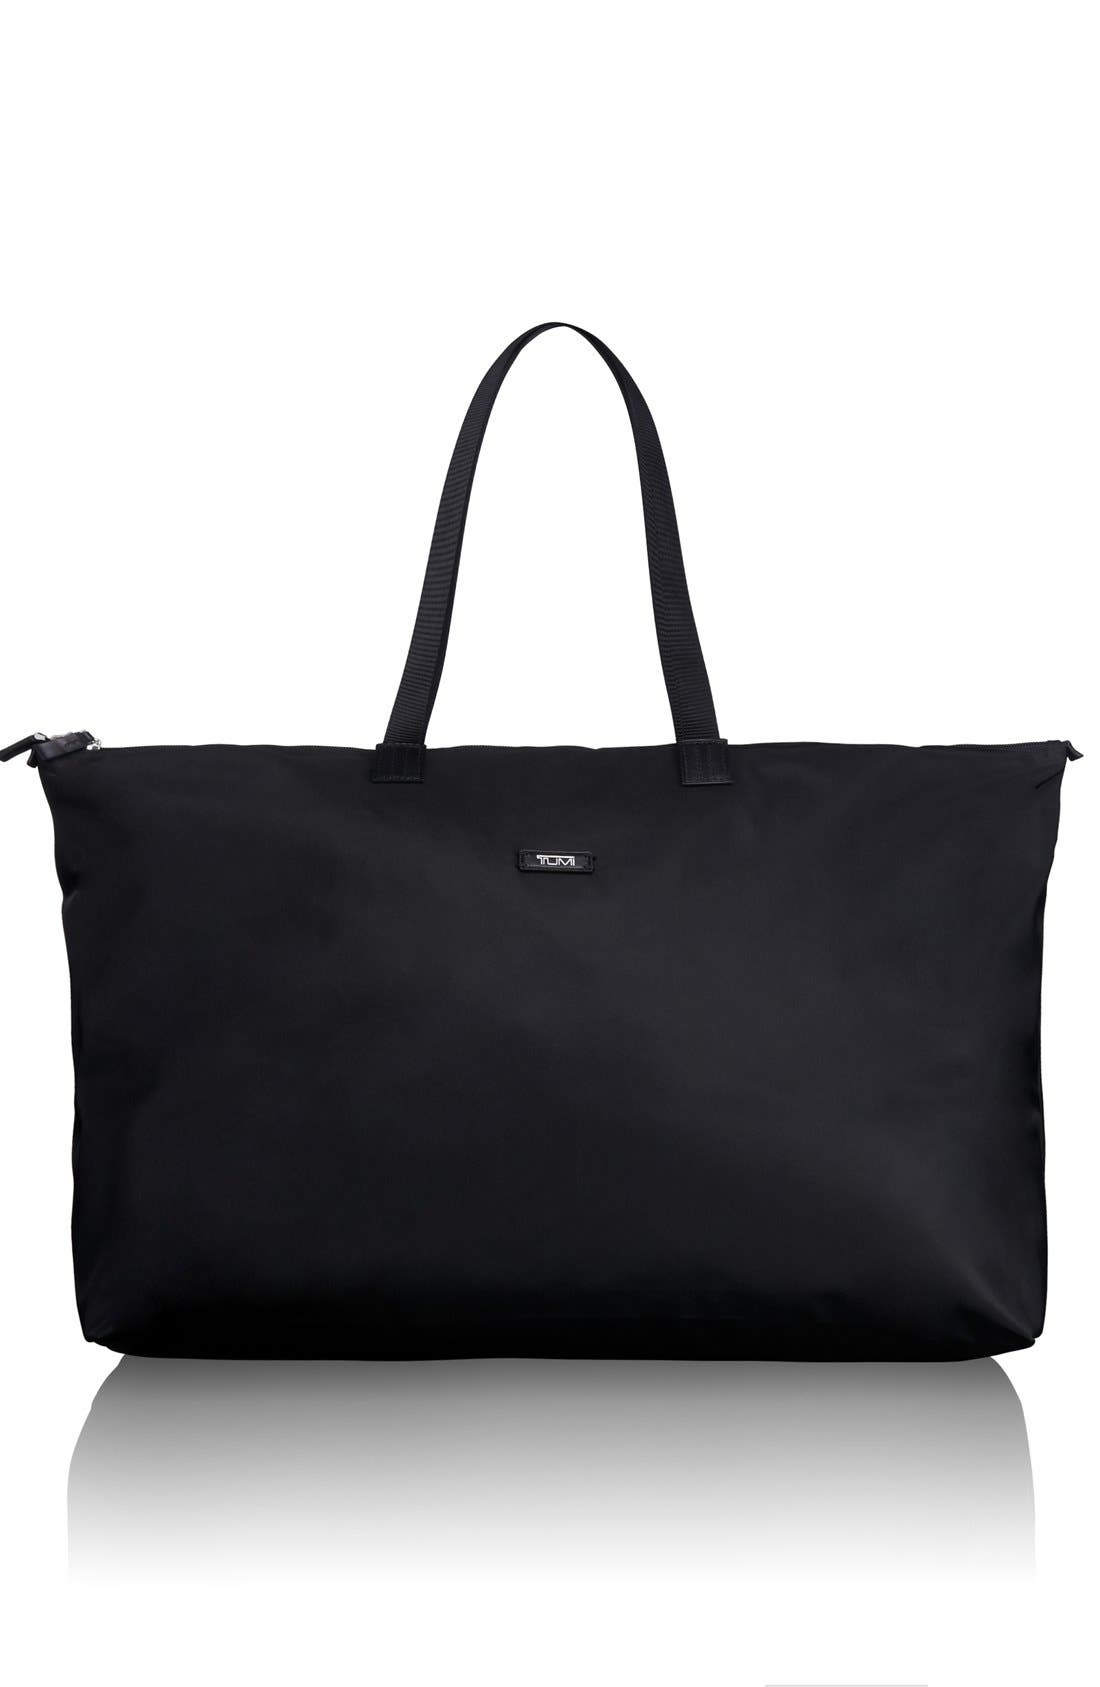 Main Image - Tumi 'Journey - Just in Case®' Nylon Duffel Bag (23 Inch)